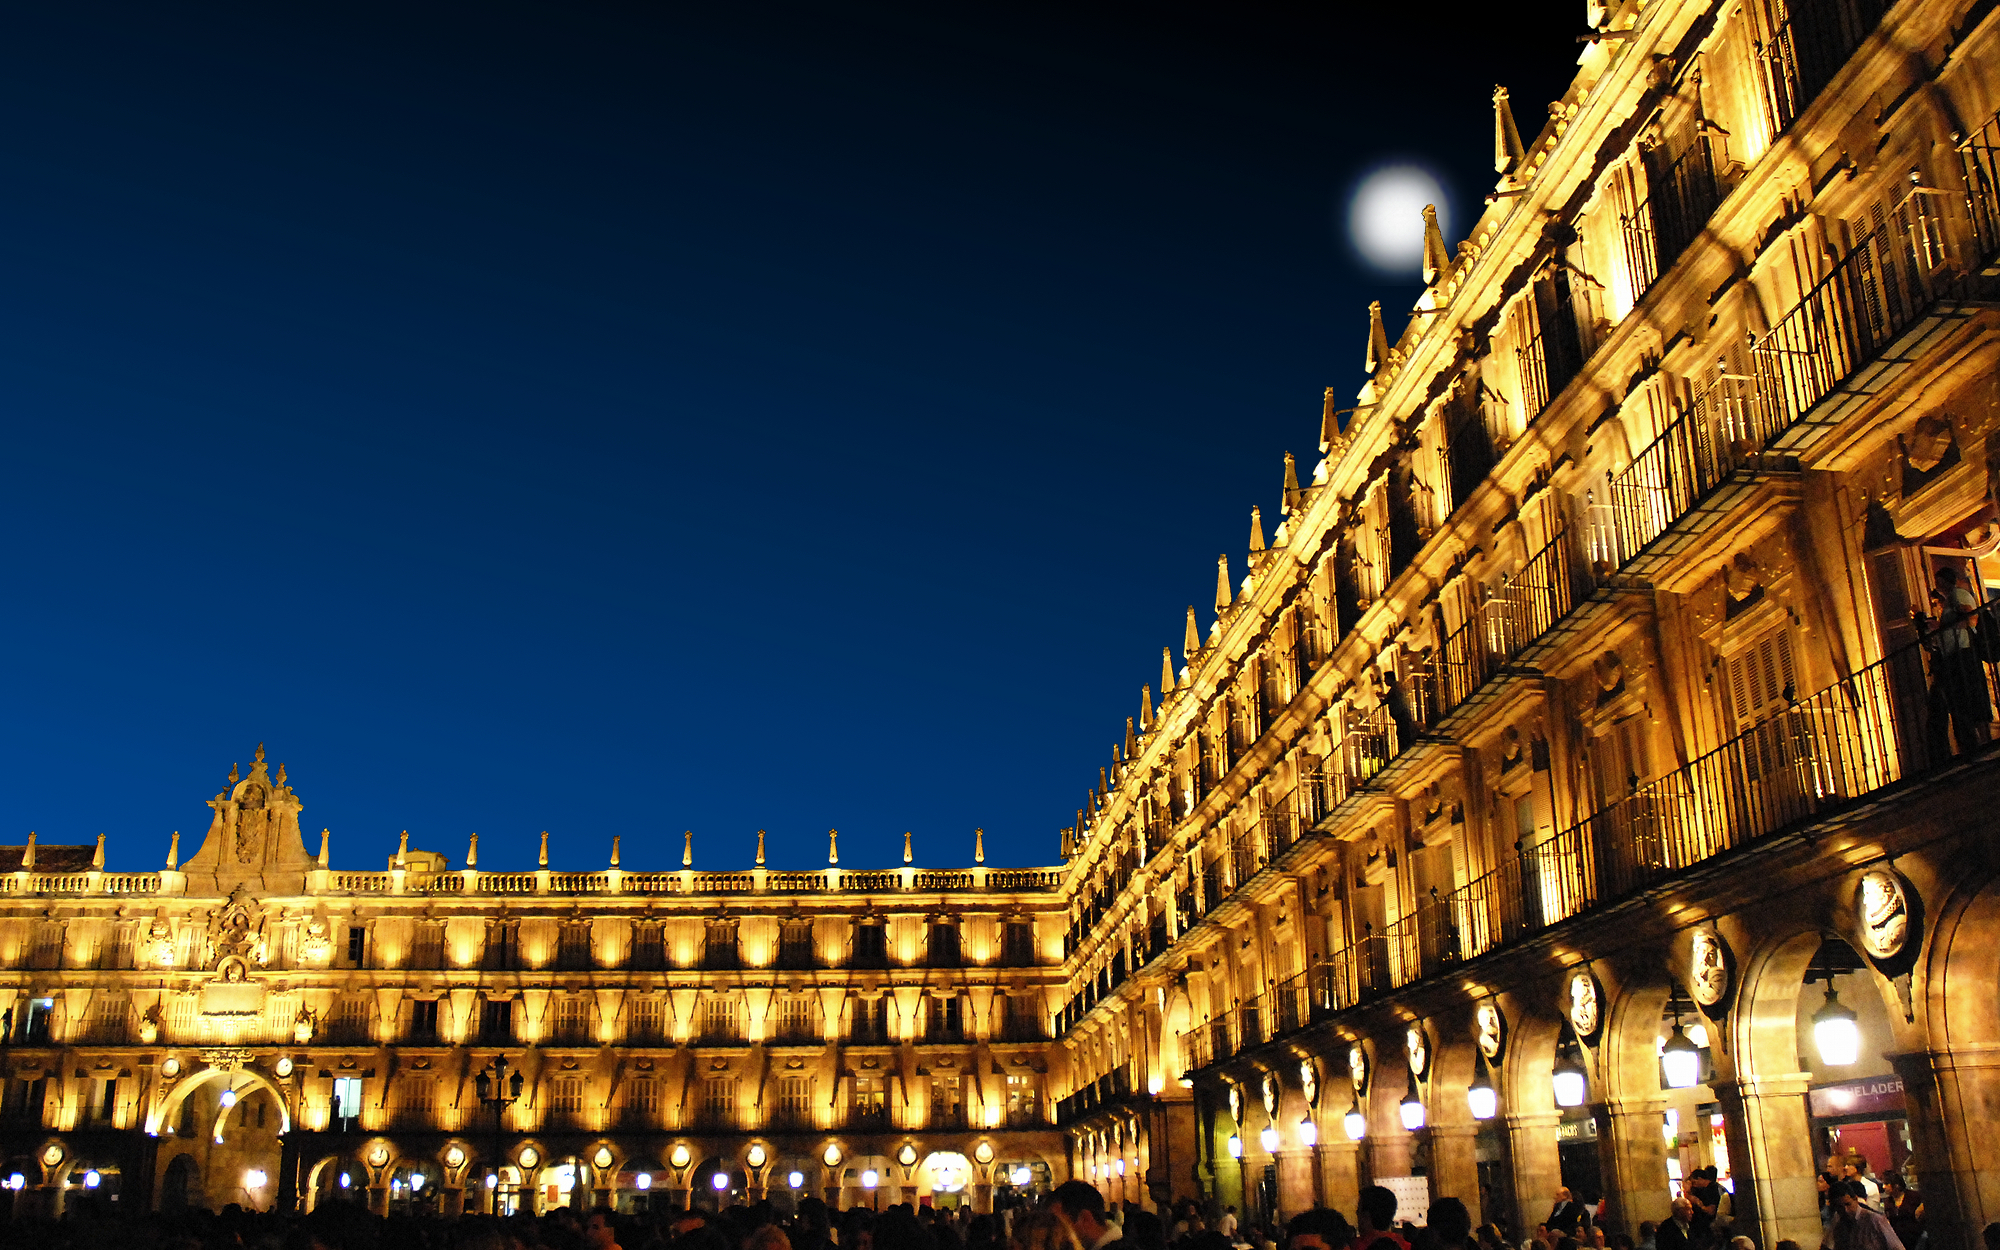 hotel plaza mayor salamanca: